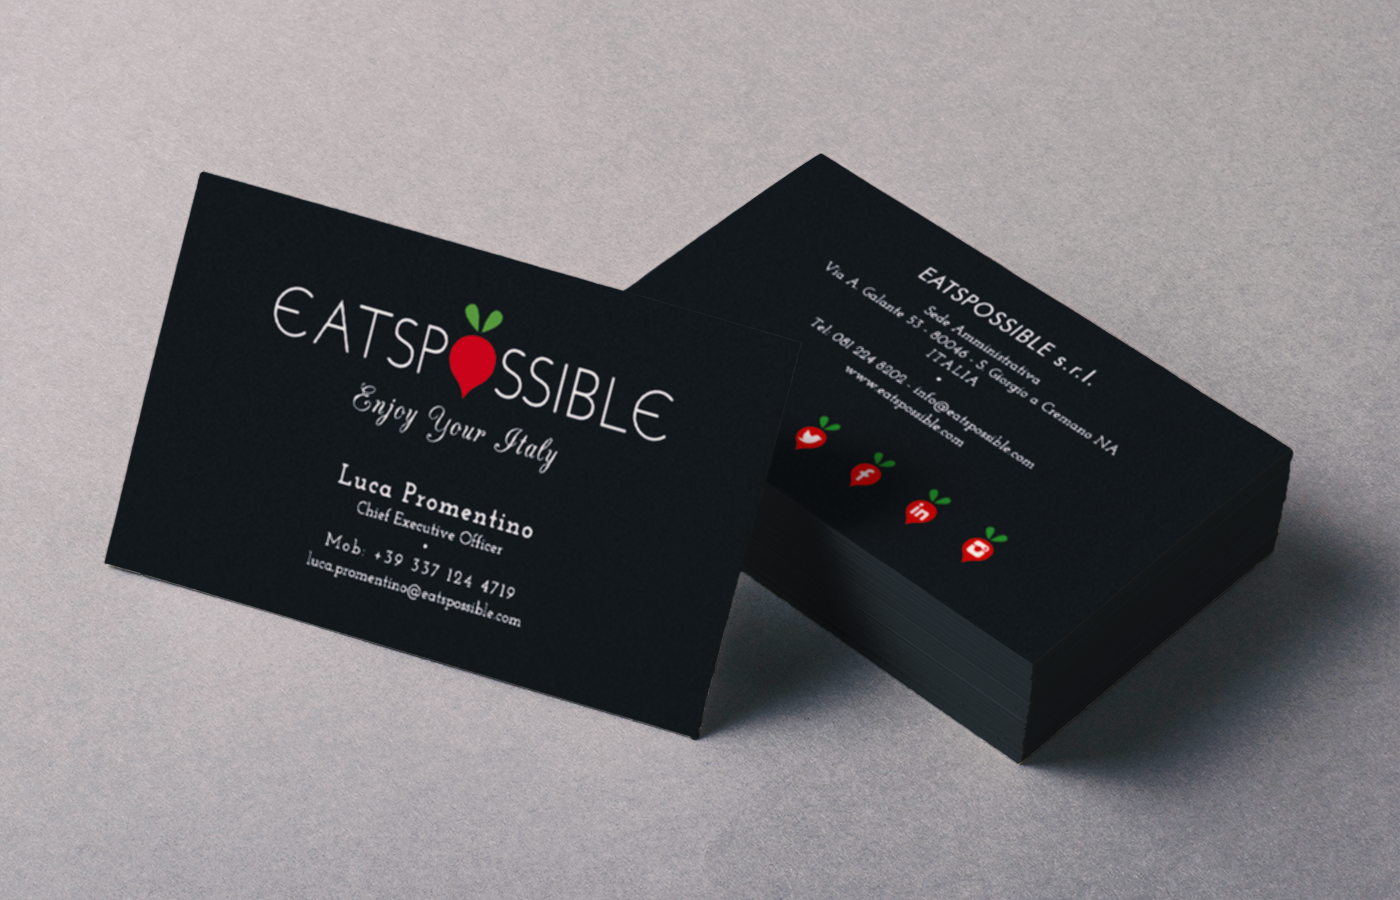 eatspossible-business-cards